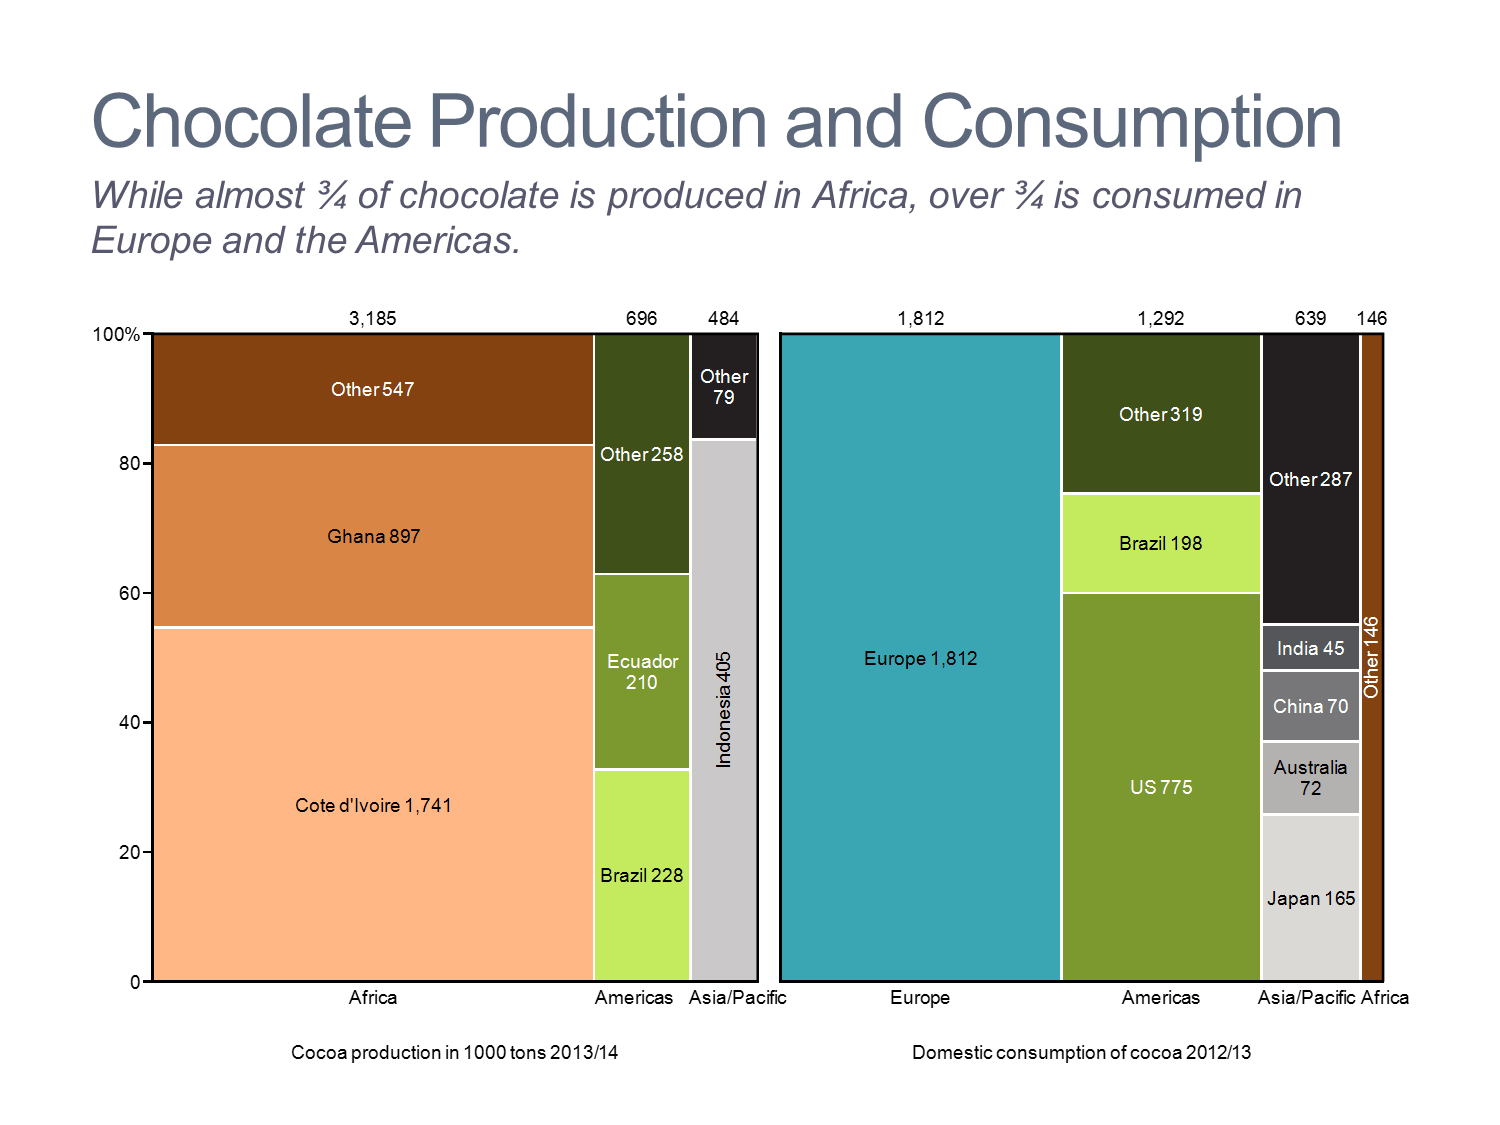 Chocolate Production and Consumption Marimekko Charts/Mekko Charts